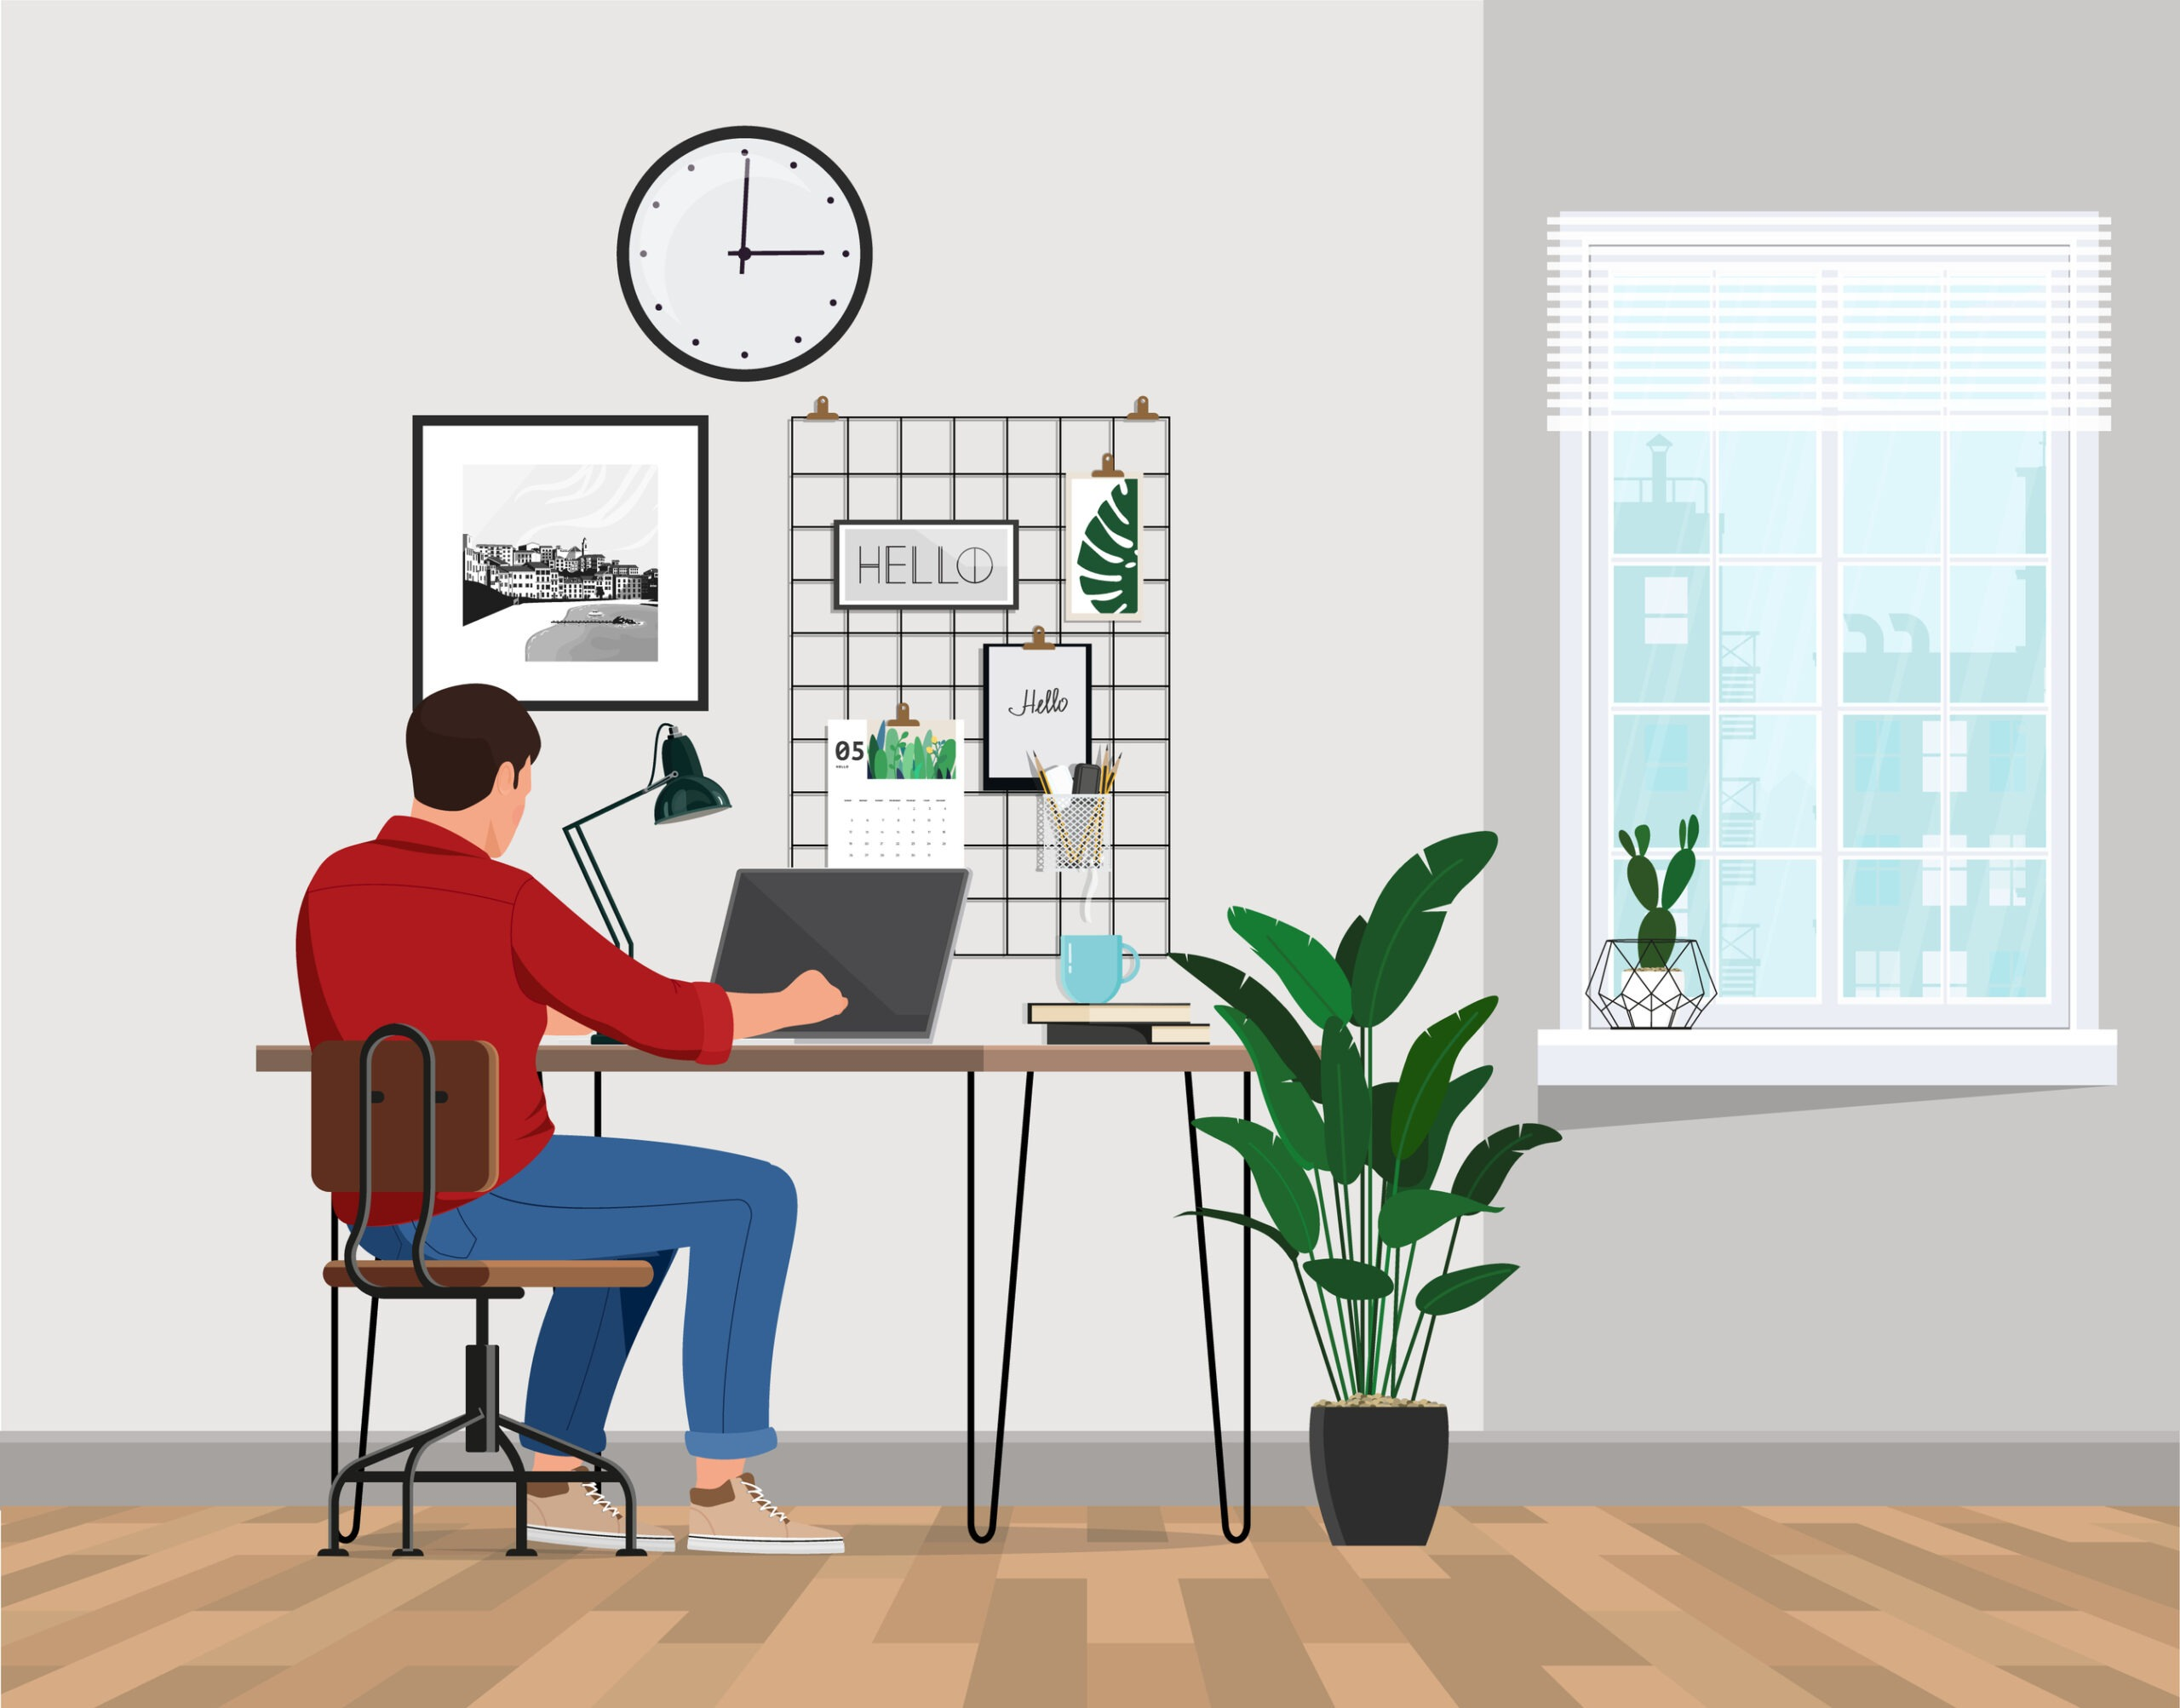 Remote Working in Today's World